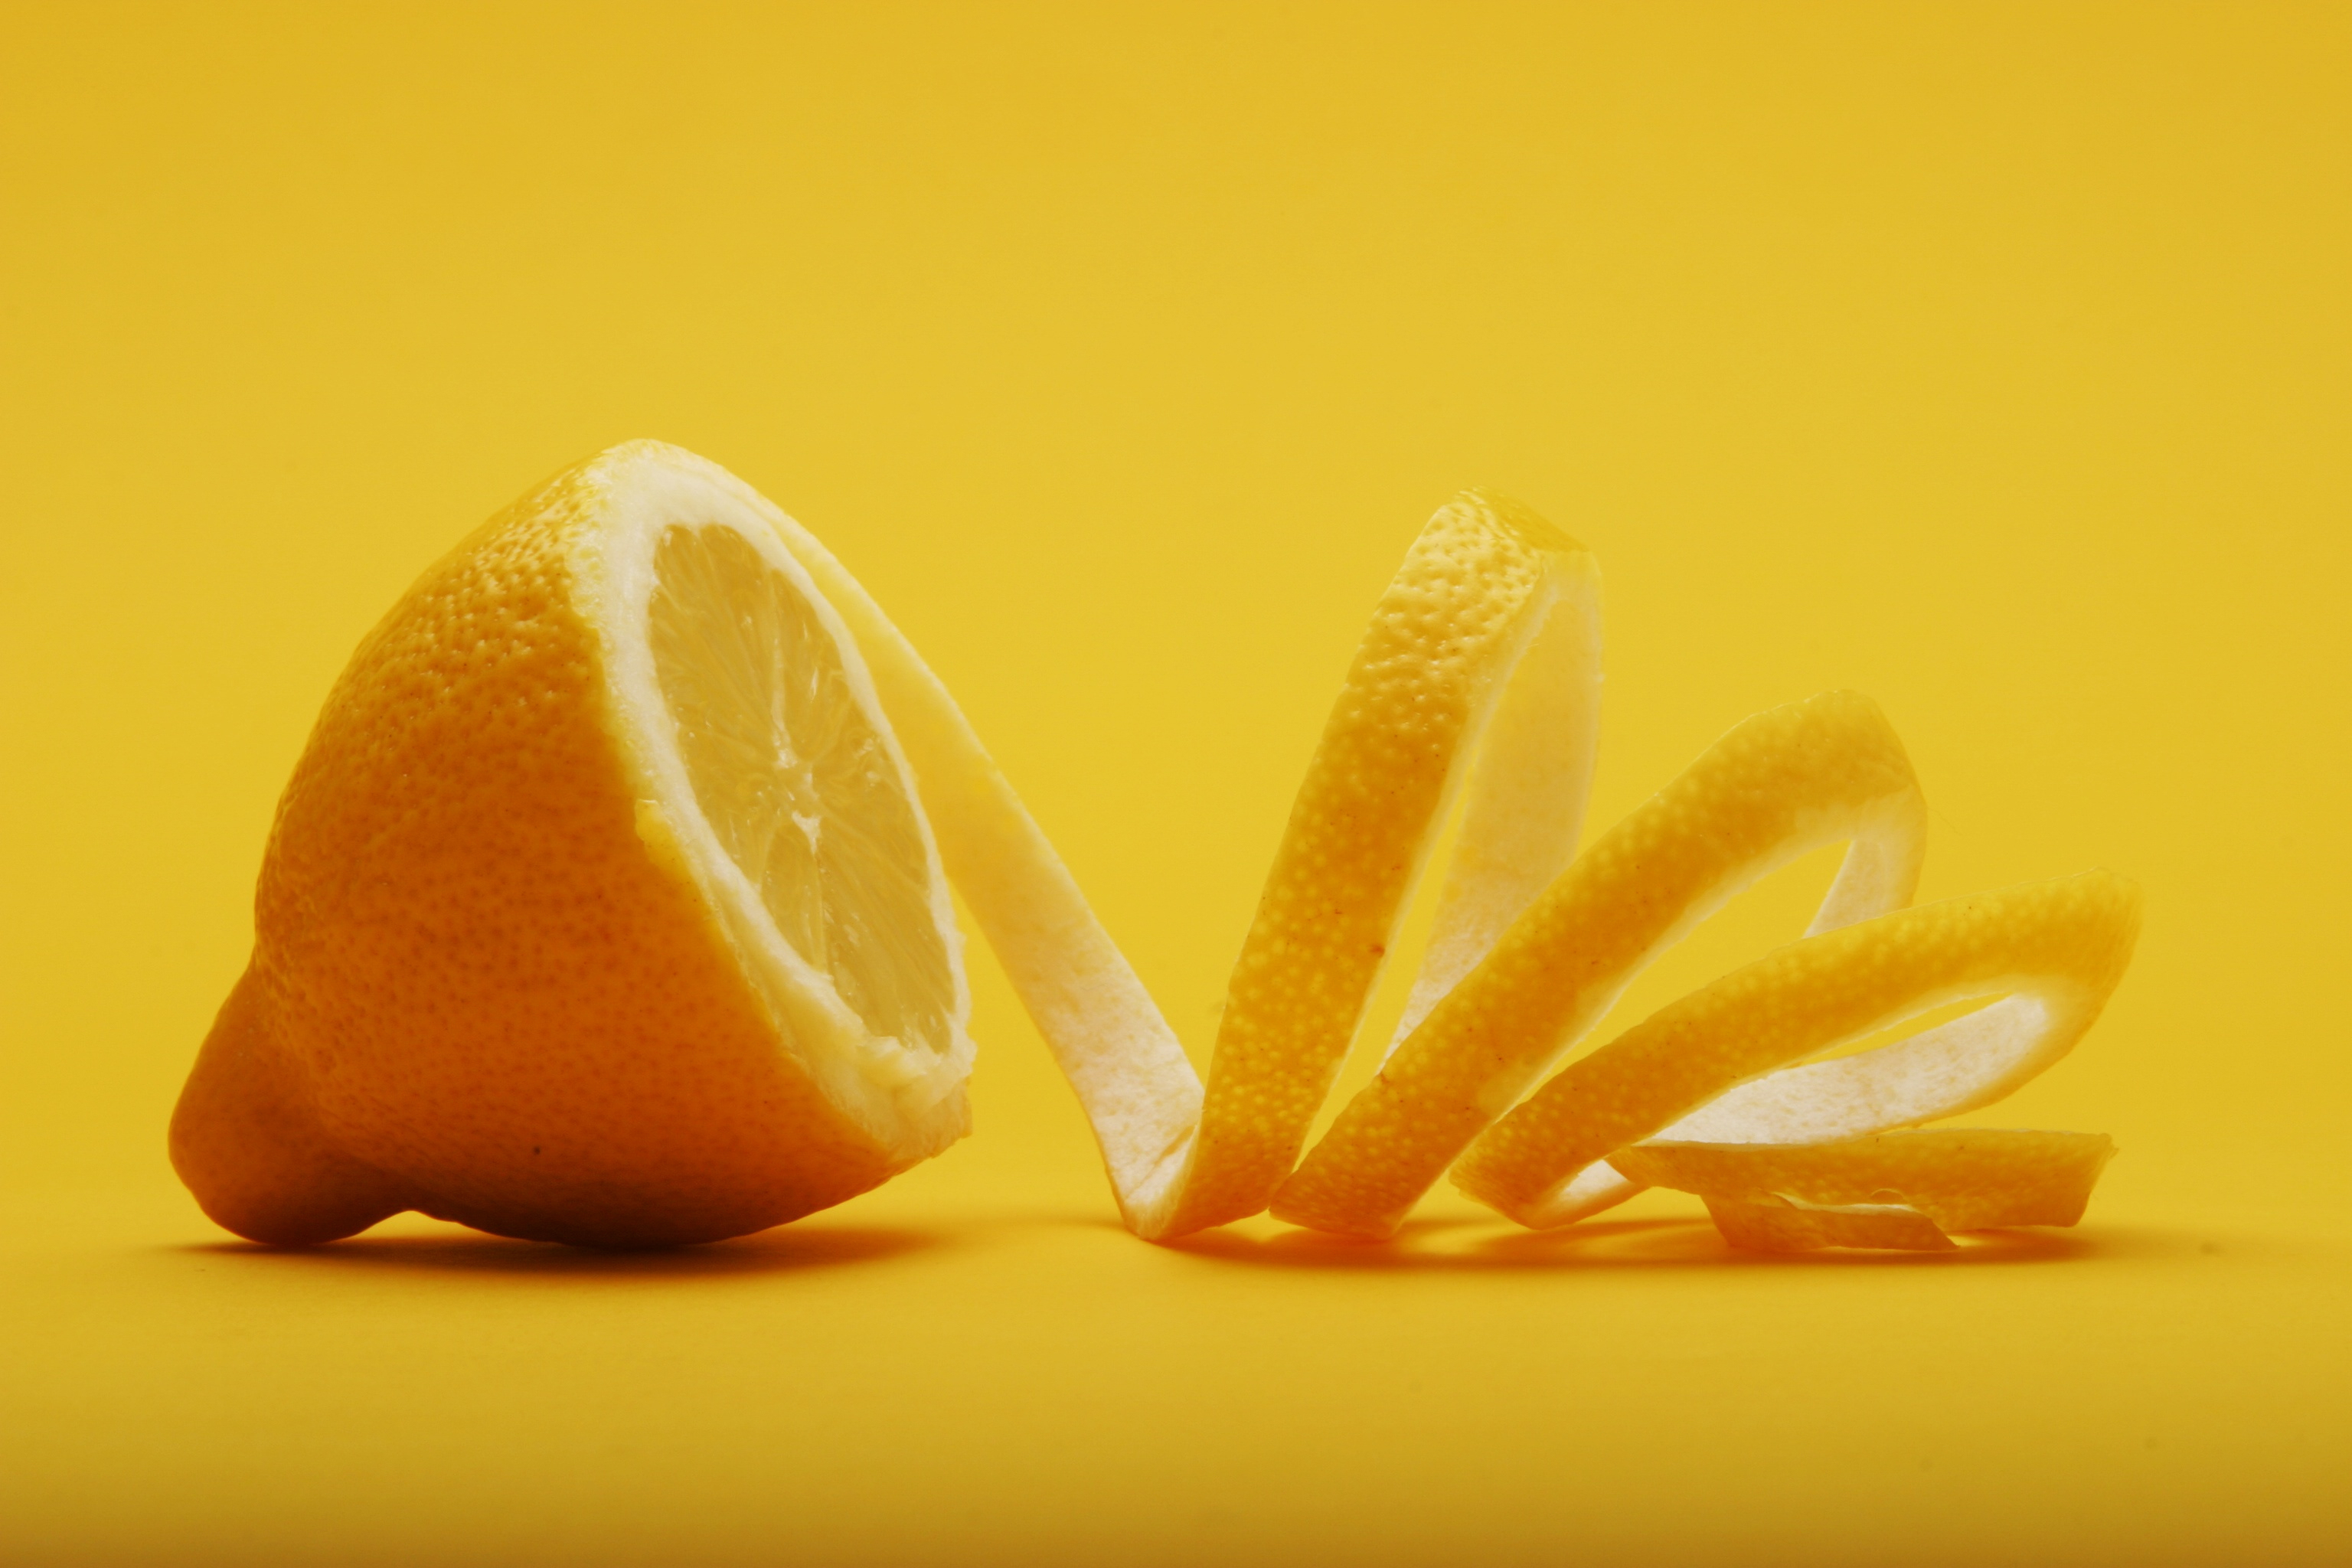 lemon-juice-acidic